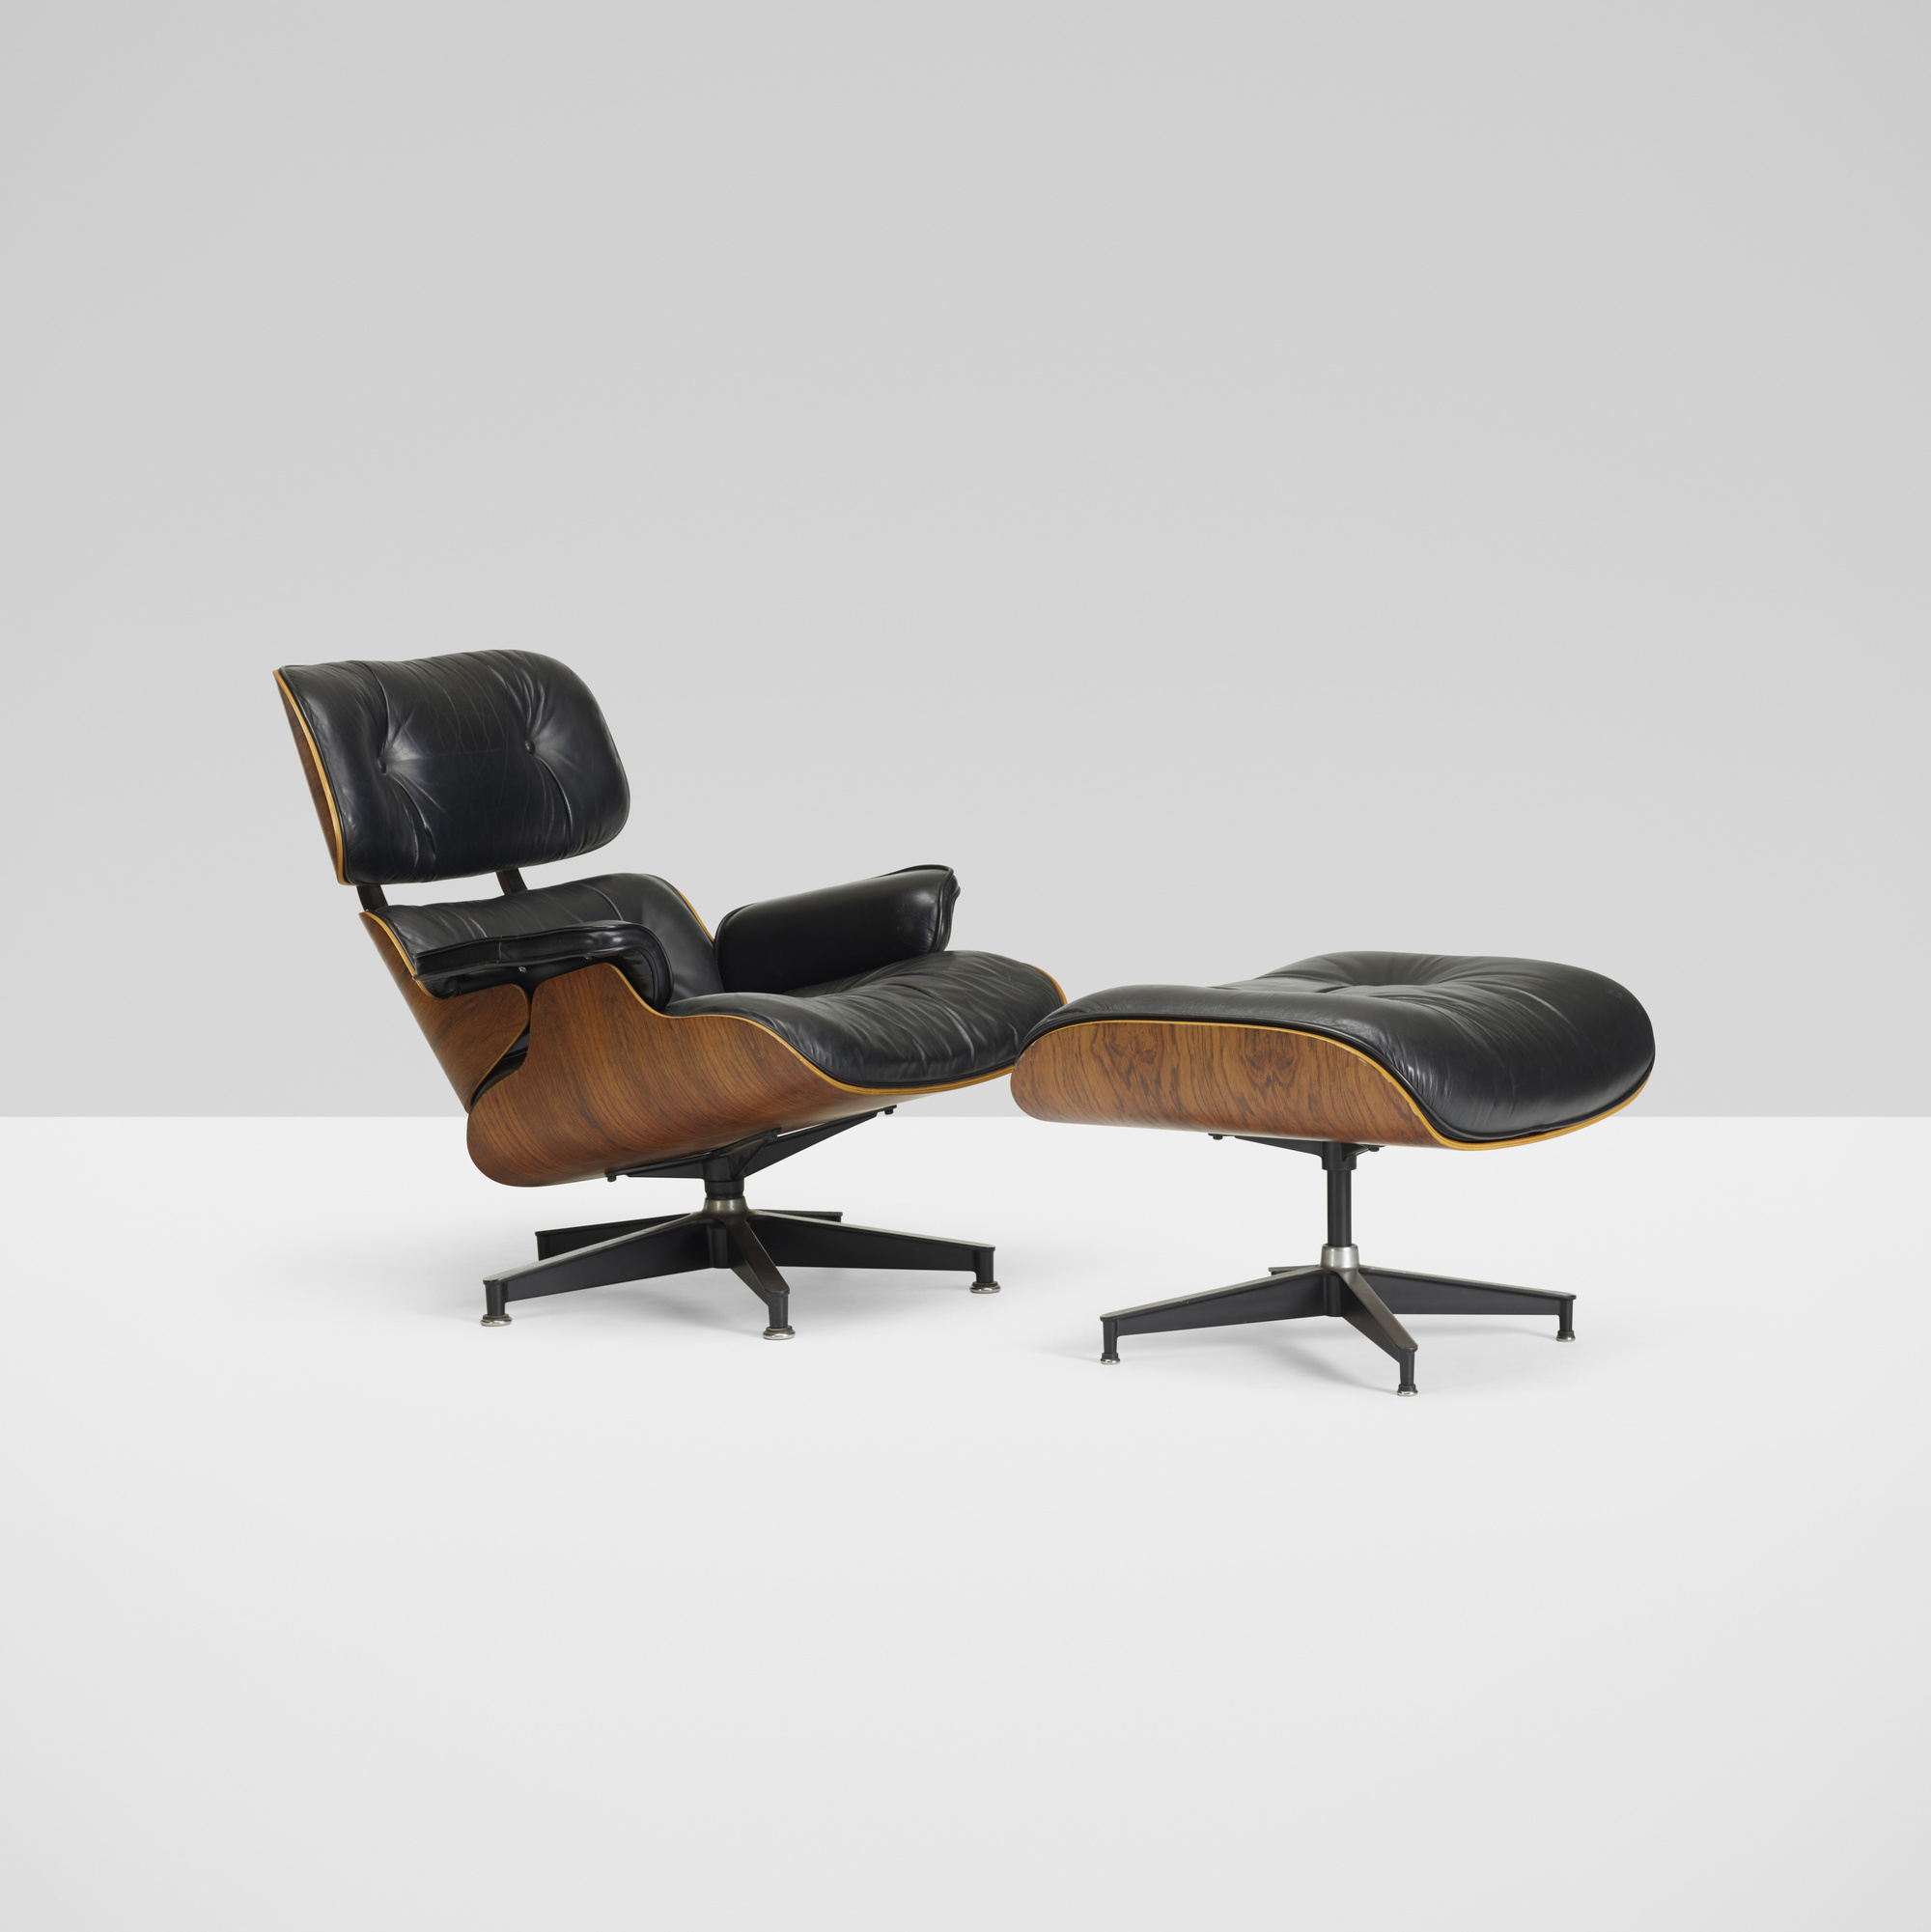 Charles Eames Lounge Chair 137 Charles And Ray Eames Lounge Chair Model 670 And